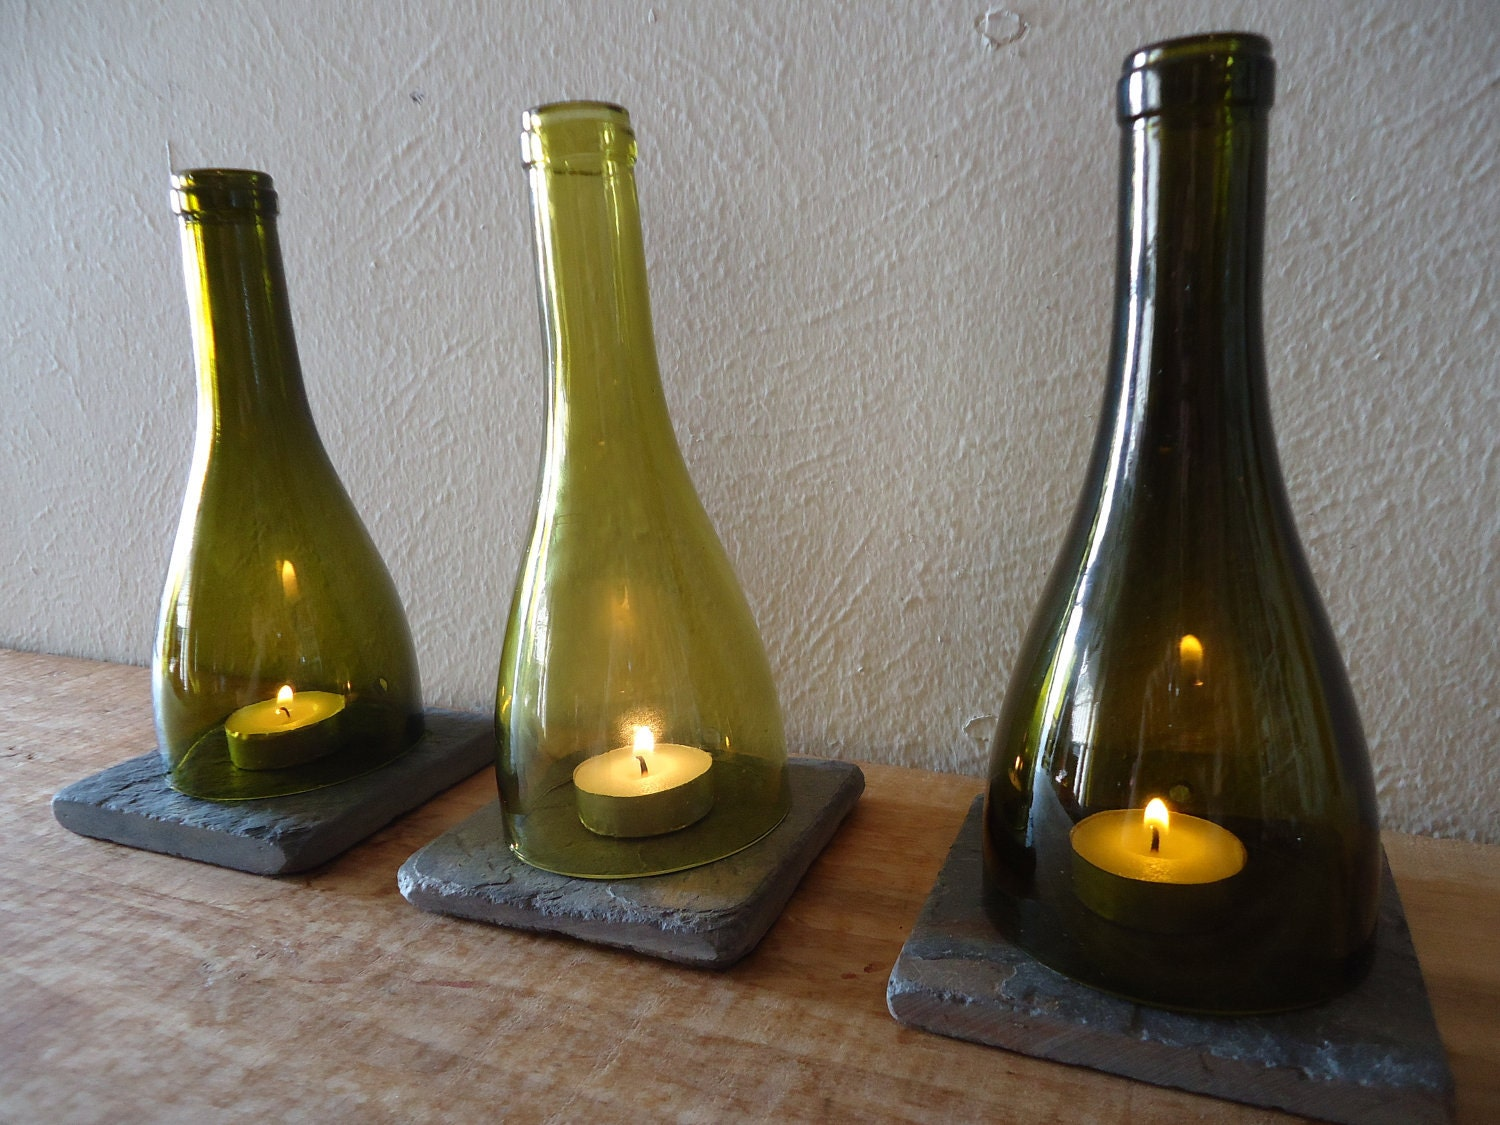 Item details for How to make candle holders out of wine bottles